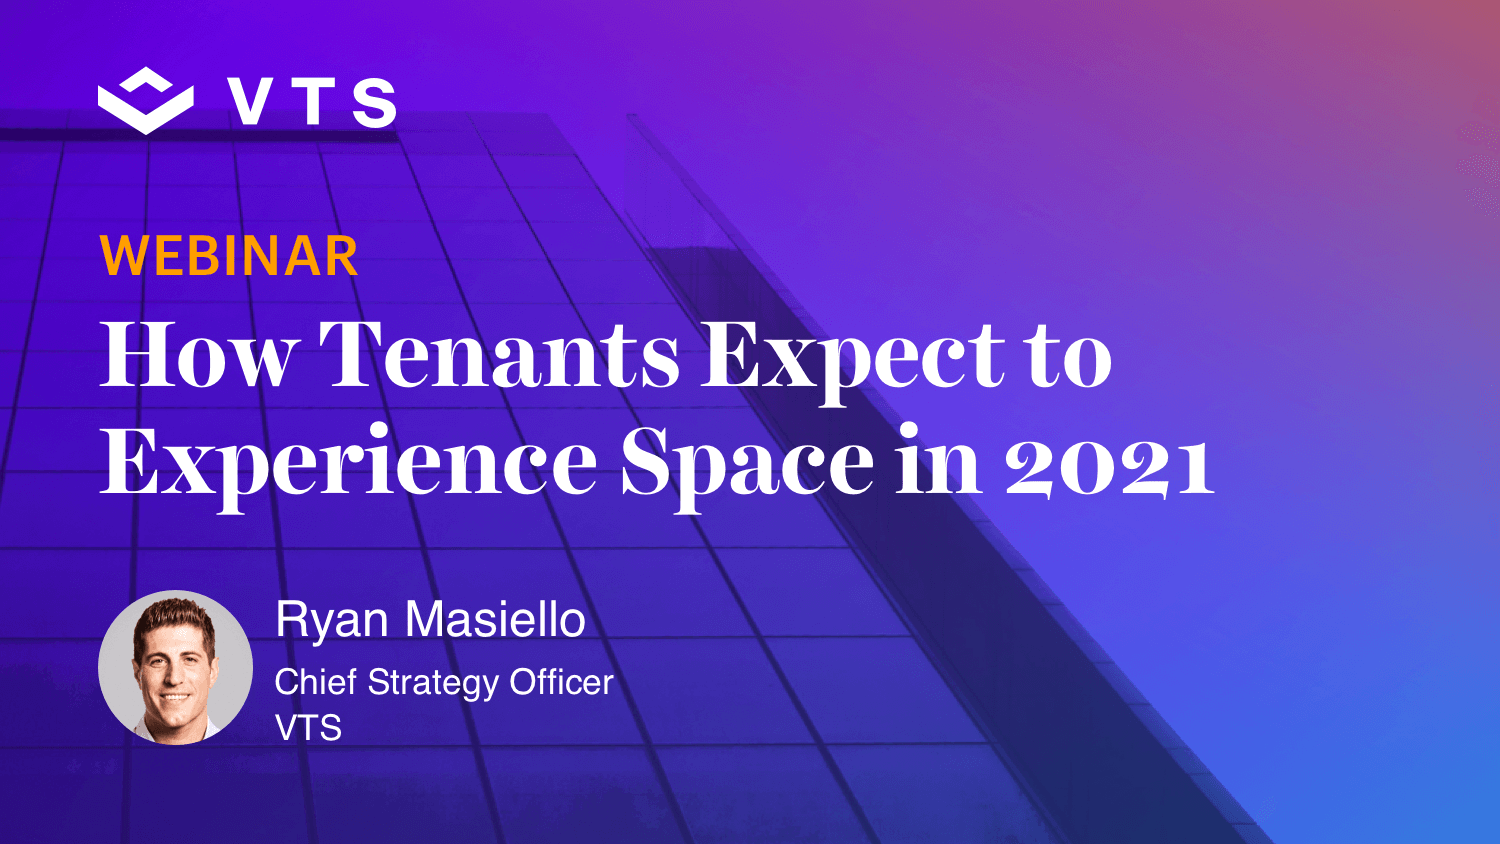 How Tenants Expect to Experience Space in 2021 by Ryan Masiello